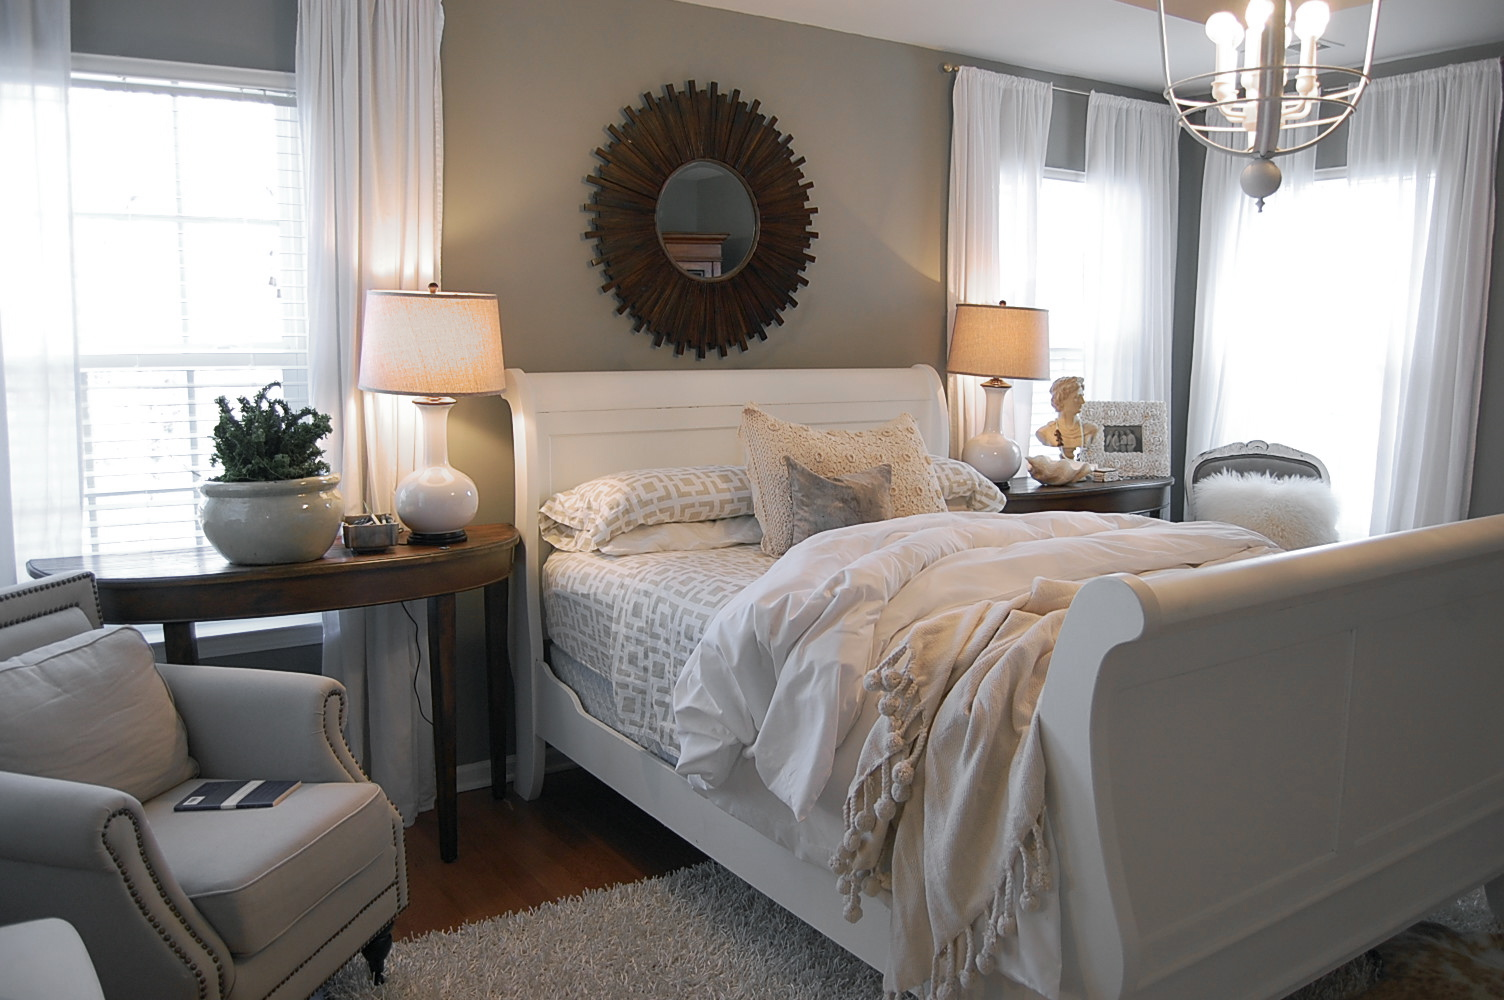 Diy Master Bedroom 28 Images Master Bedroom Diy Diy Wood Planked Ceiling Redhead Can